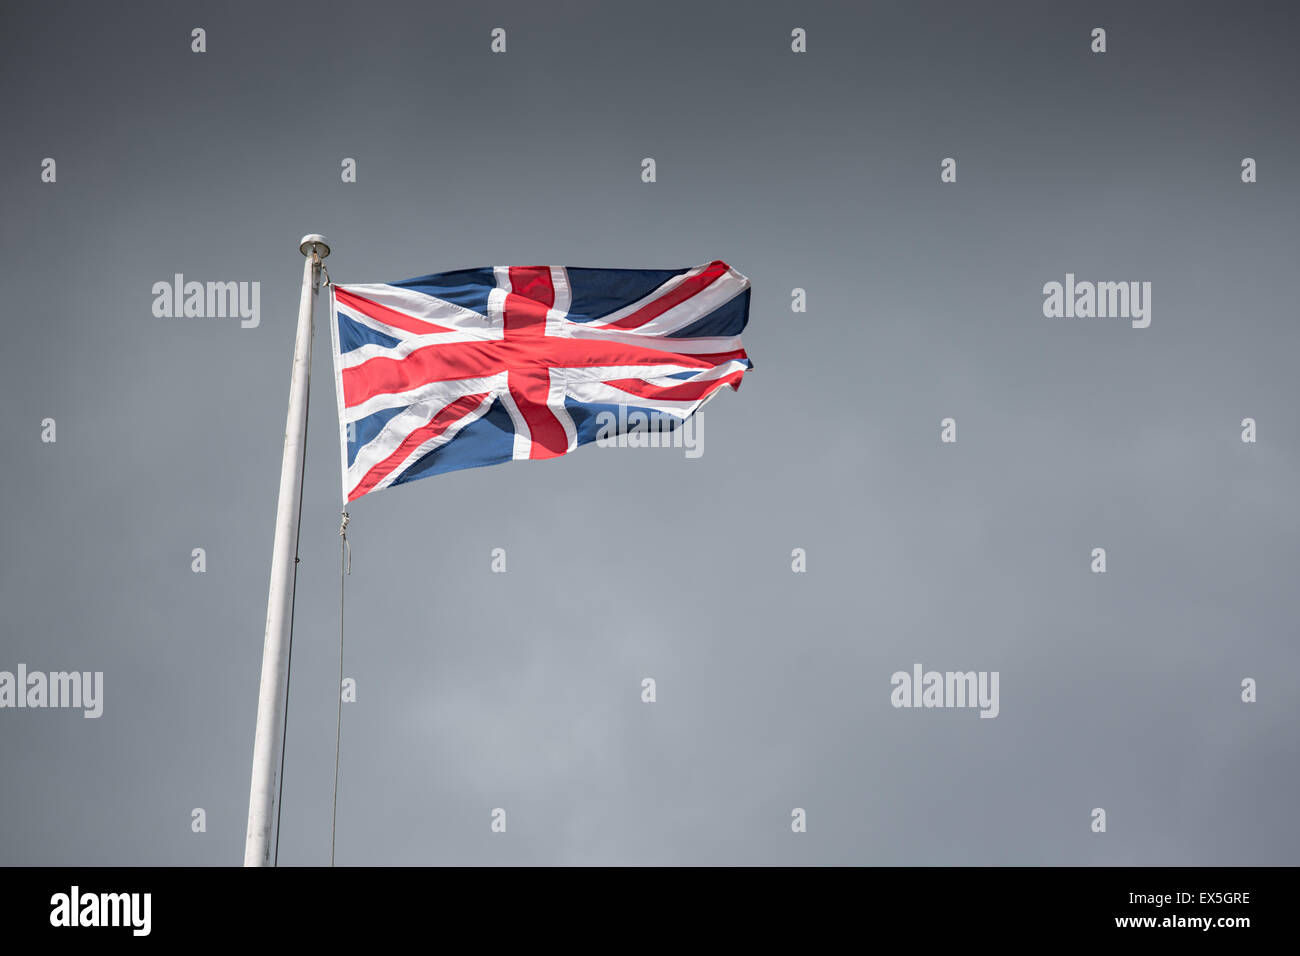 Union jack flag billowing against a dramatic sky Stock Photo